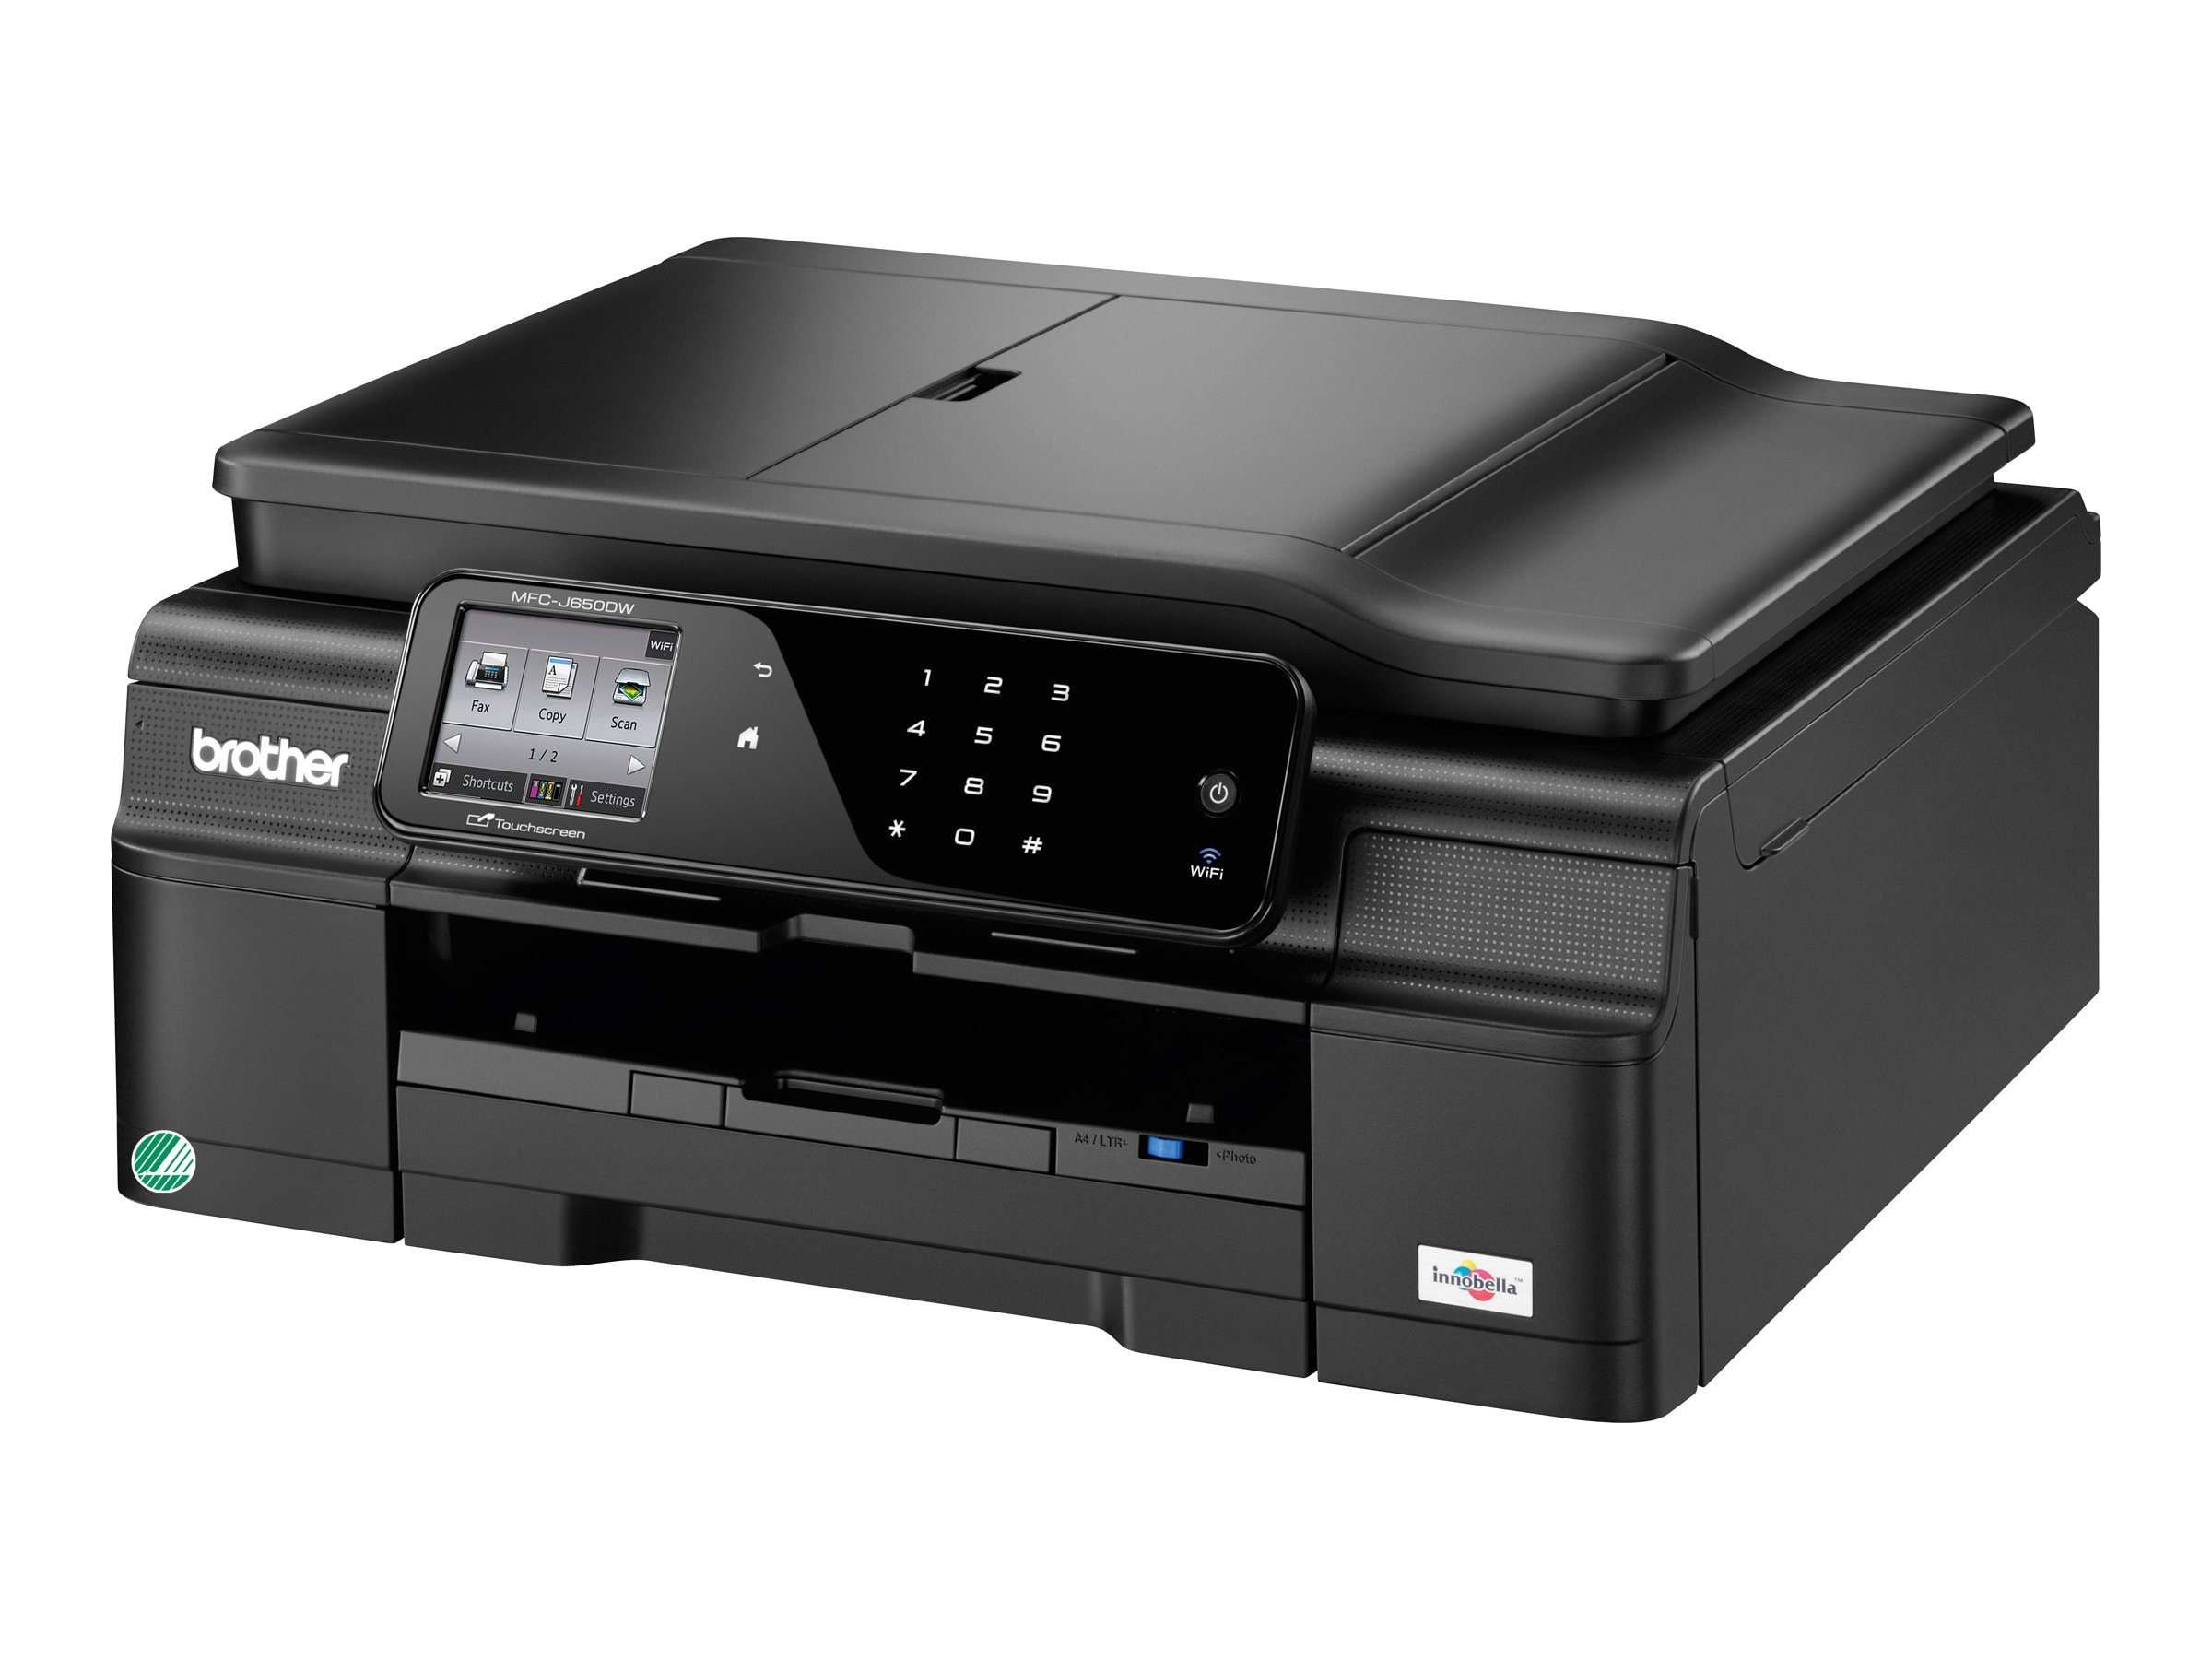 Brother MFC-J650DW Work Smart Color Inkjet All-in-One